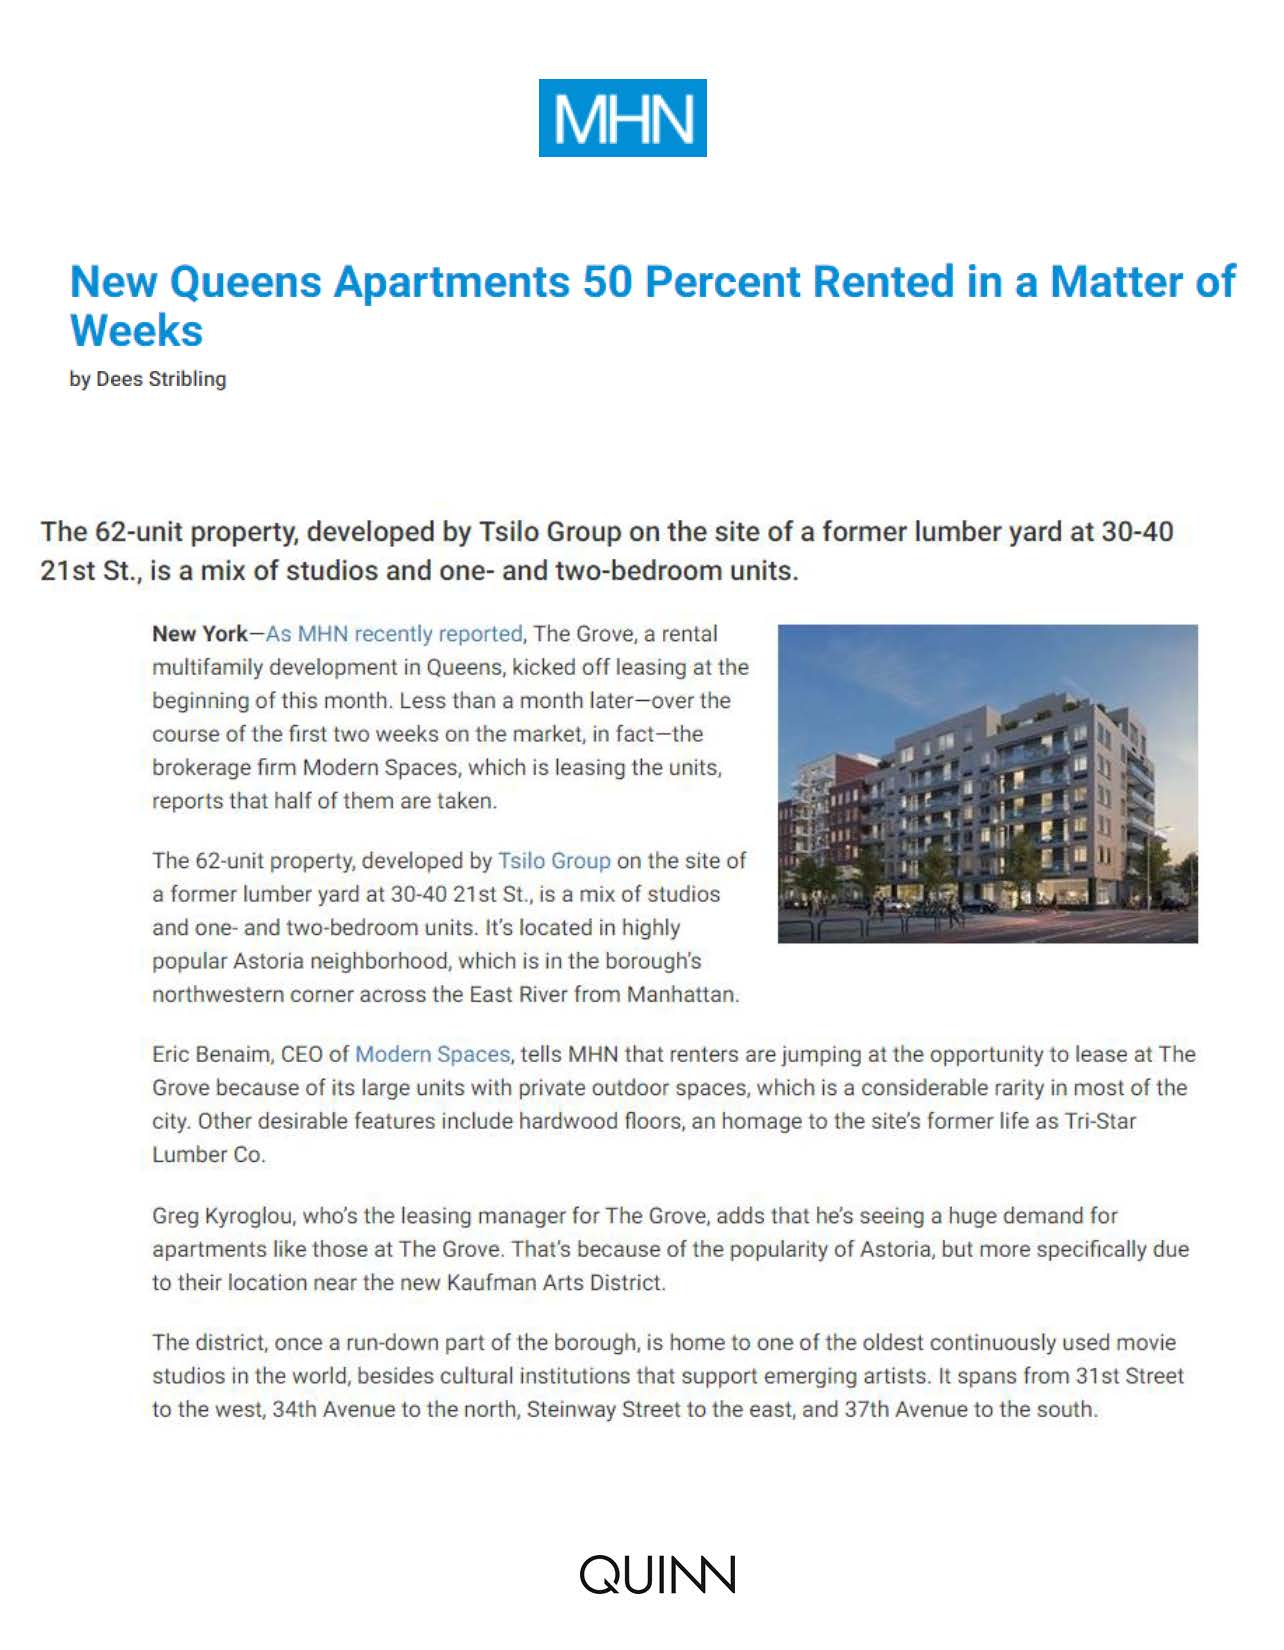 Multi-Housing News - New Queens Apartments 50 Percent Rented in a Matter of Weeks - 03.22.16